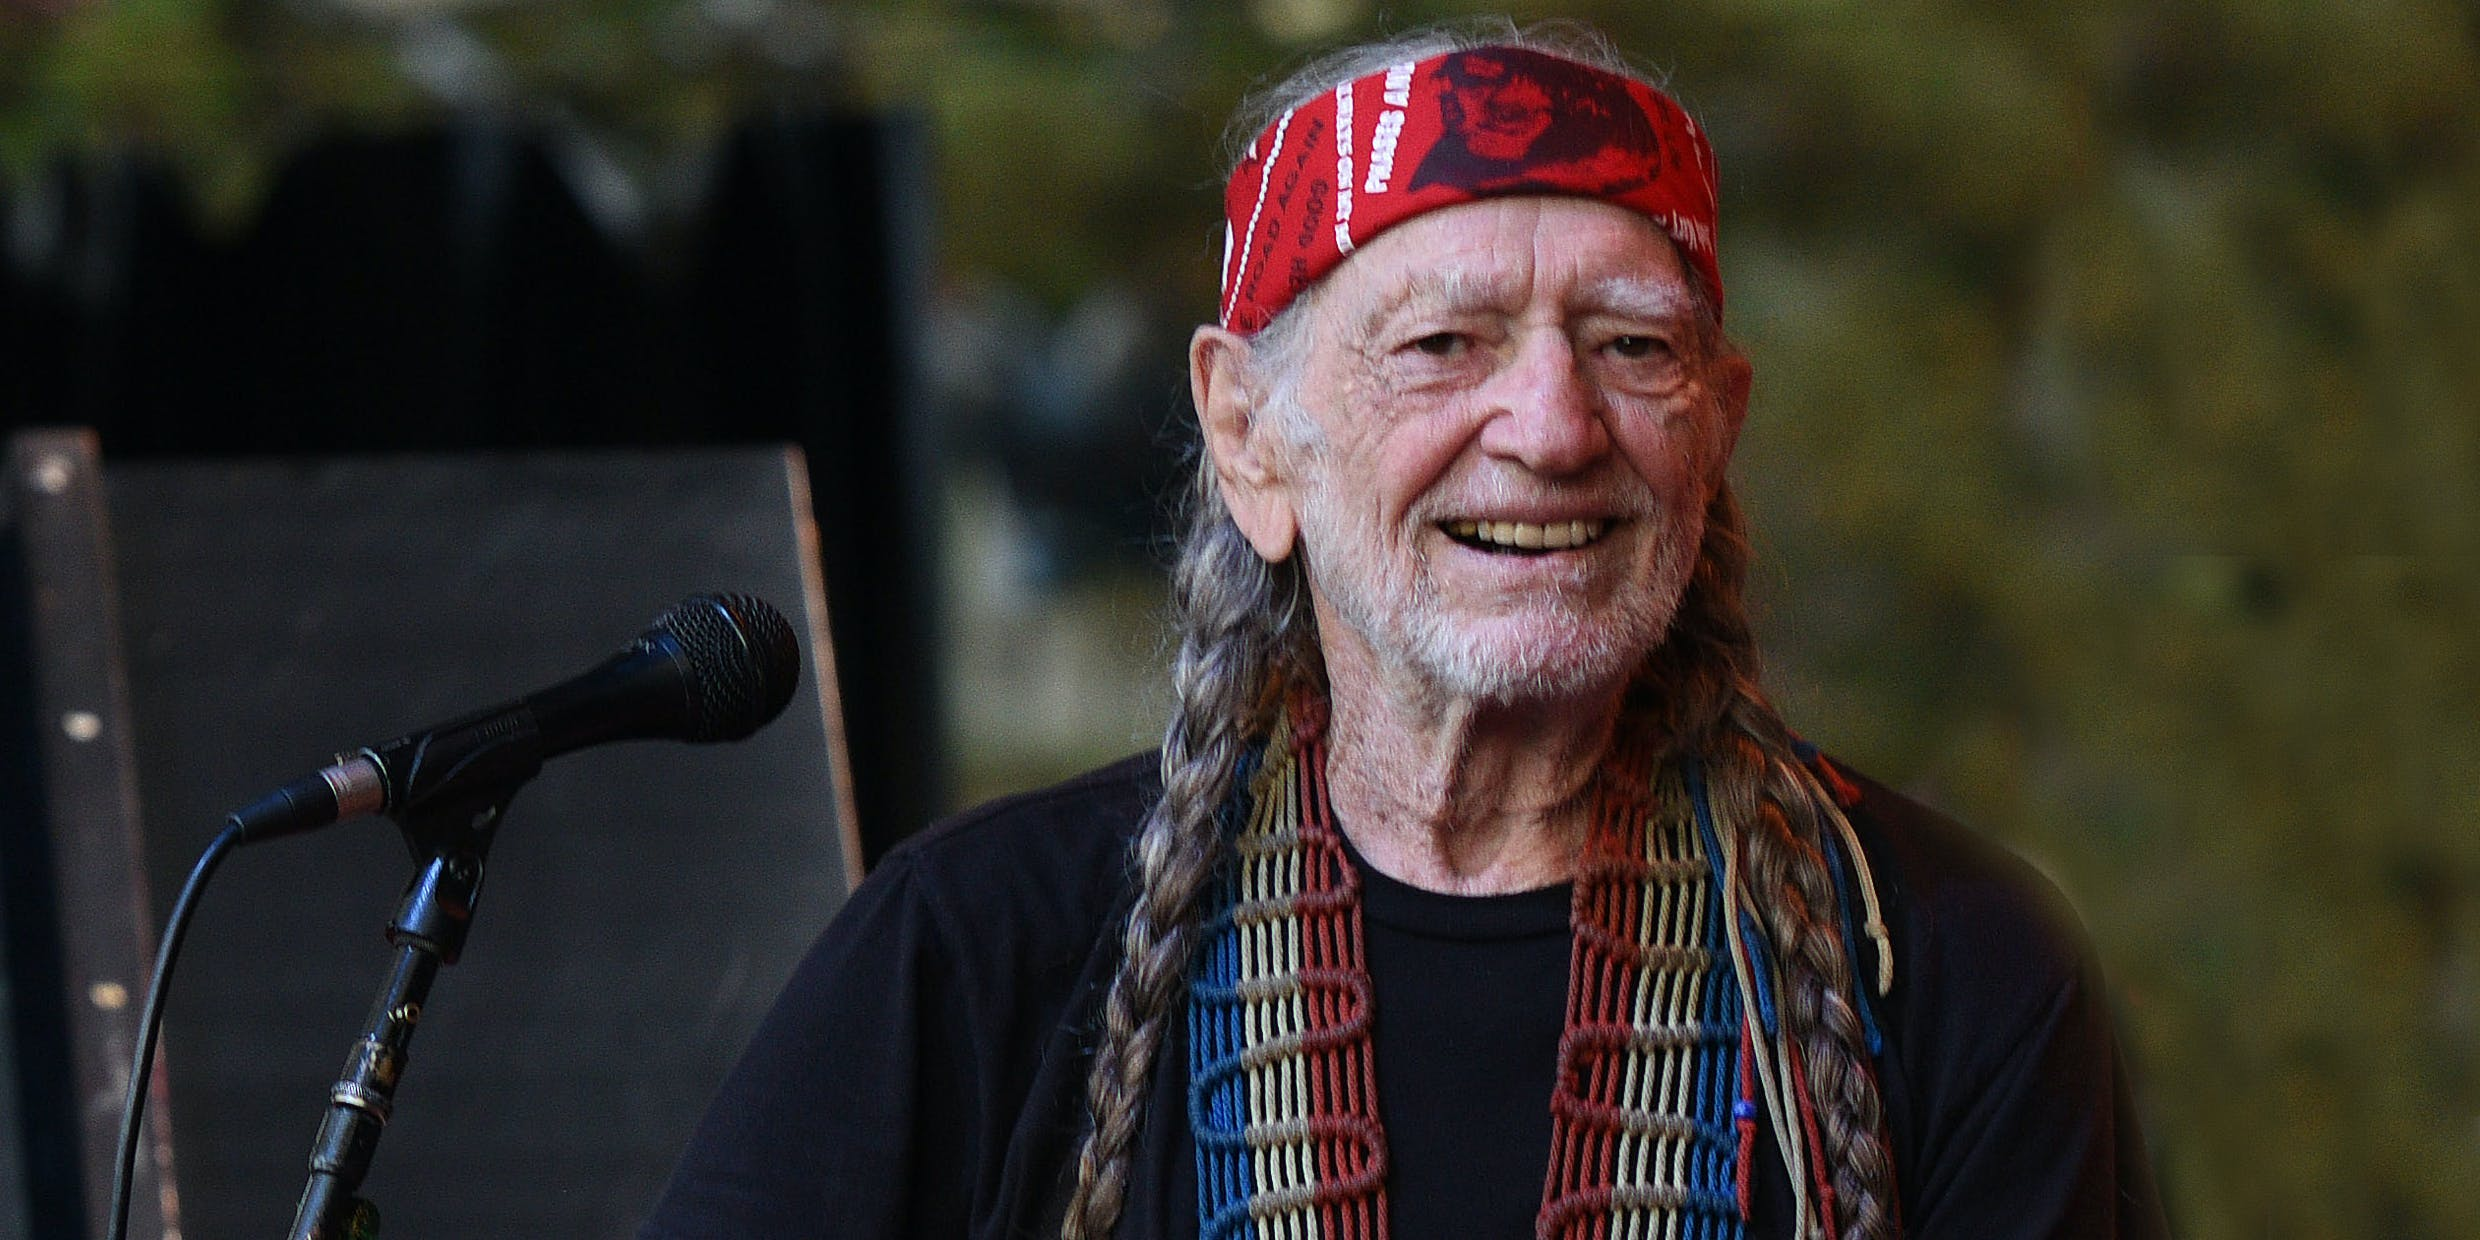 MOUNTAIN VIEW, CA - OCTOBER 23: Willie Nelson performs during the 30th Anniversary Bridge School Benefit Concert at Shoreline Amphitheatre on October 23, 2016 in Mountain View, California. LivWell, a Canadian cannabis producer, recently announced that they'll be distributing the singer's cannabis line, Willie's Reserve, in Canada